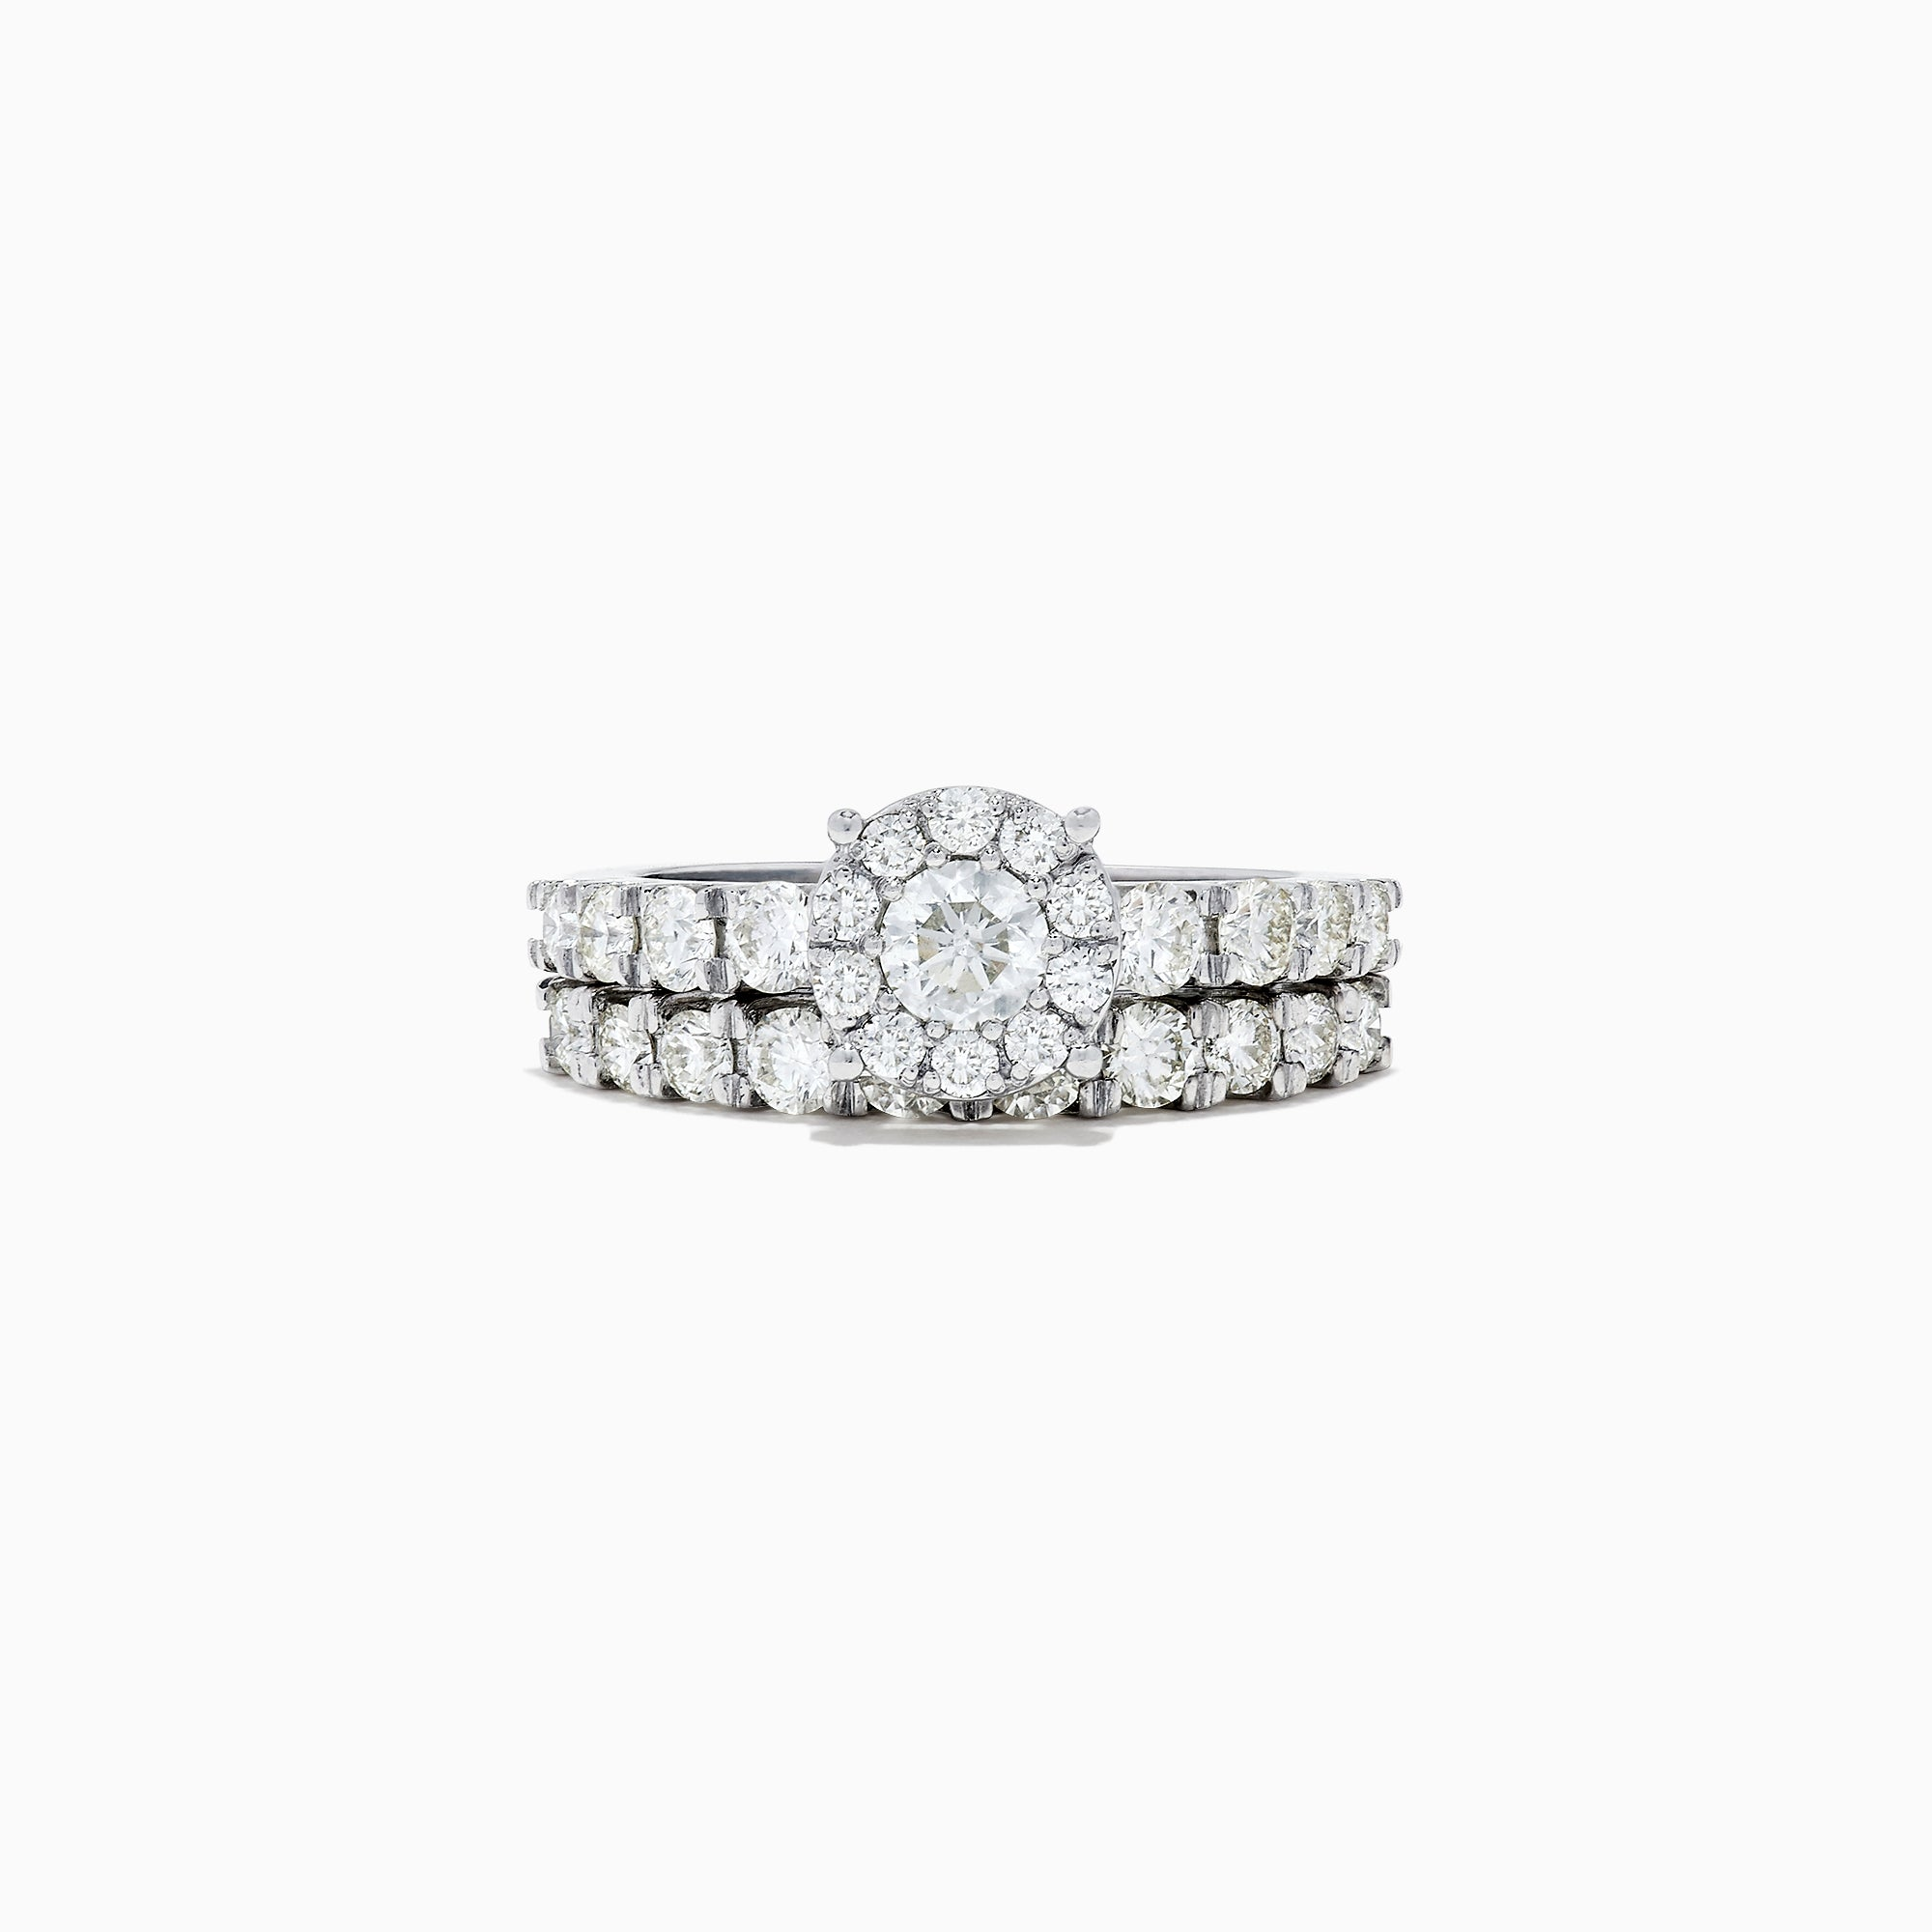 Effy Bridal 14K White Gold Diamond Cluster Ring and Band Set, 1.77 TCW